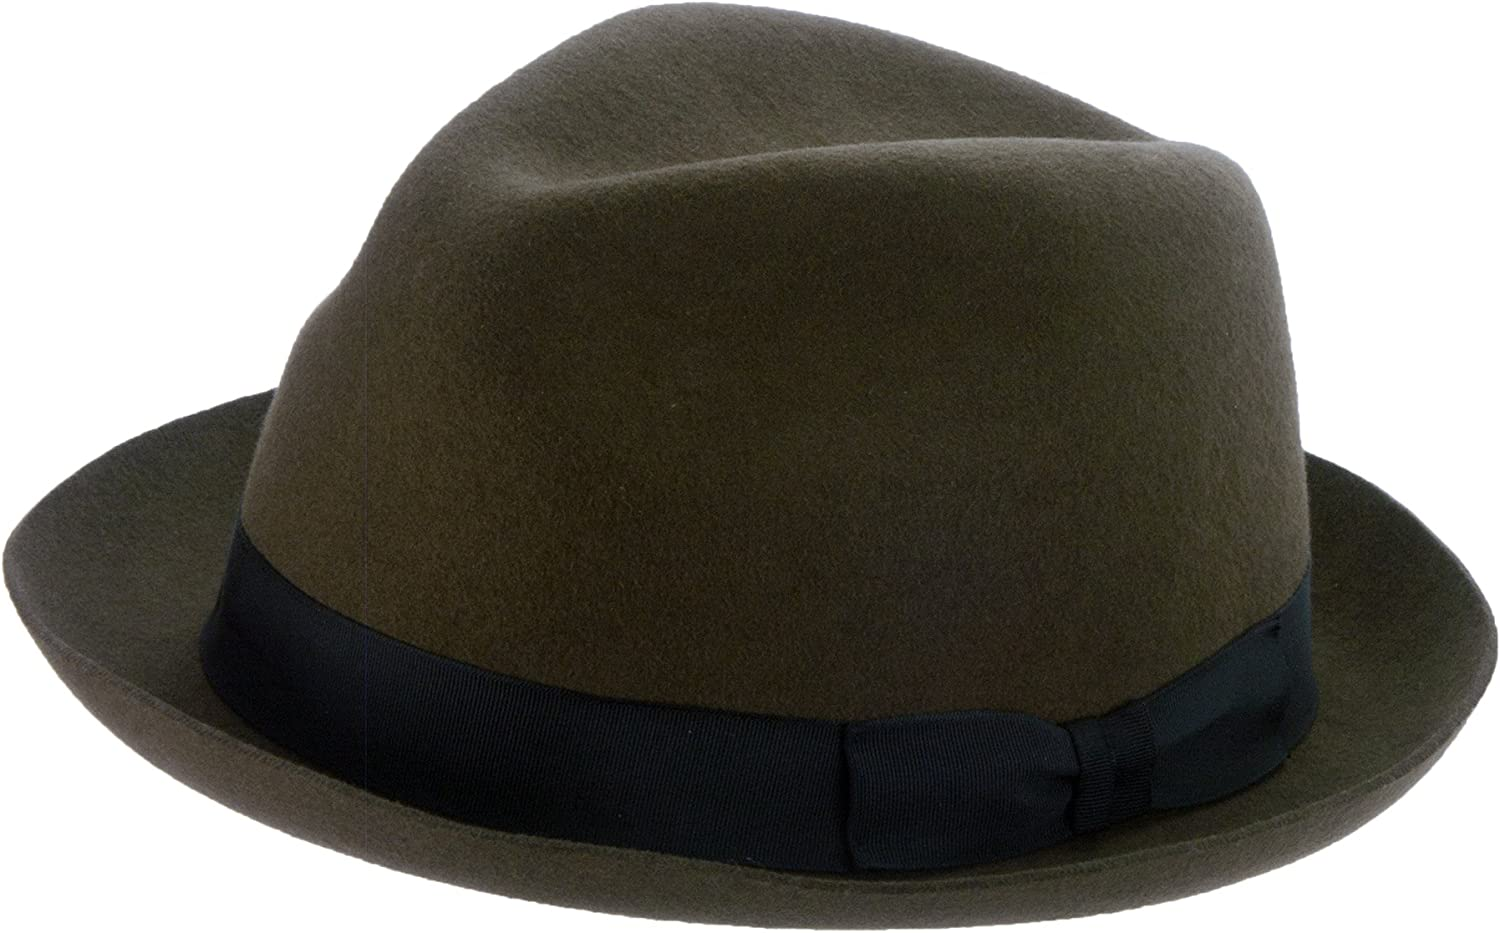 San Francisco Hat Company Preston Stingy Brim Wool Felt Fedora